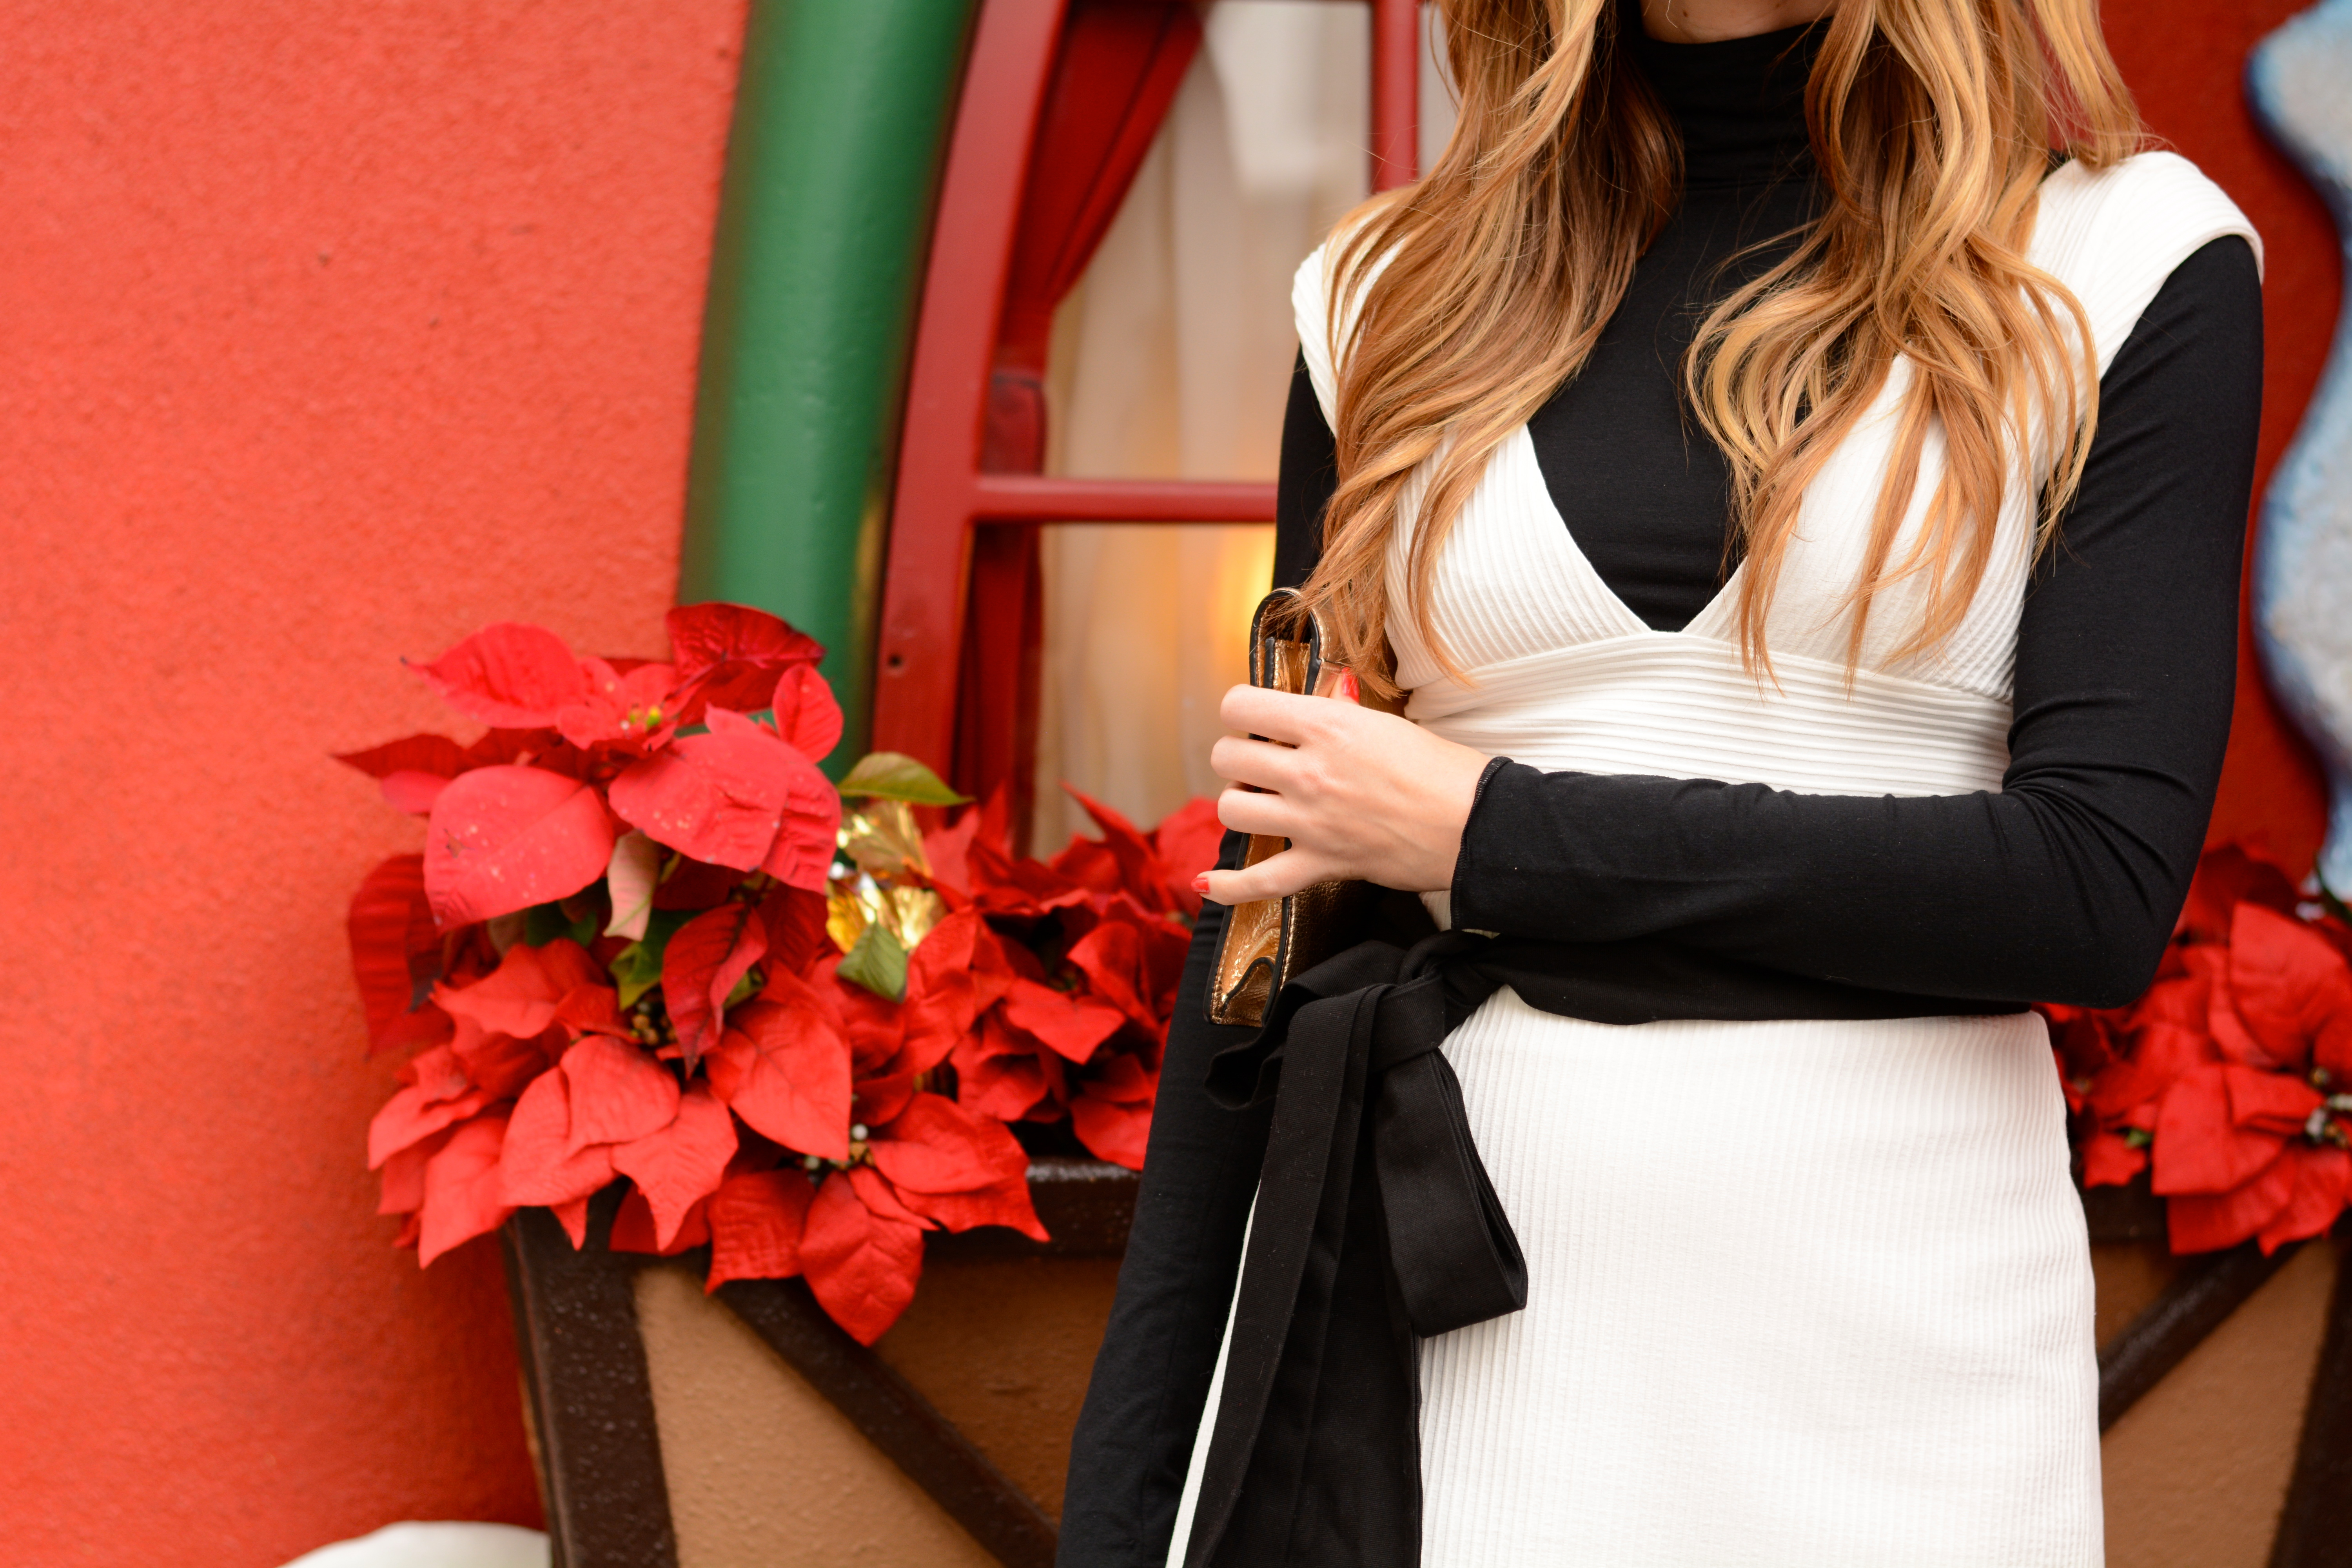 Holiday outfit inspiration, How to style long hair, holiday outfit ideas, holiday outfits